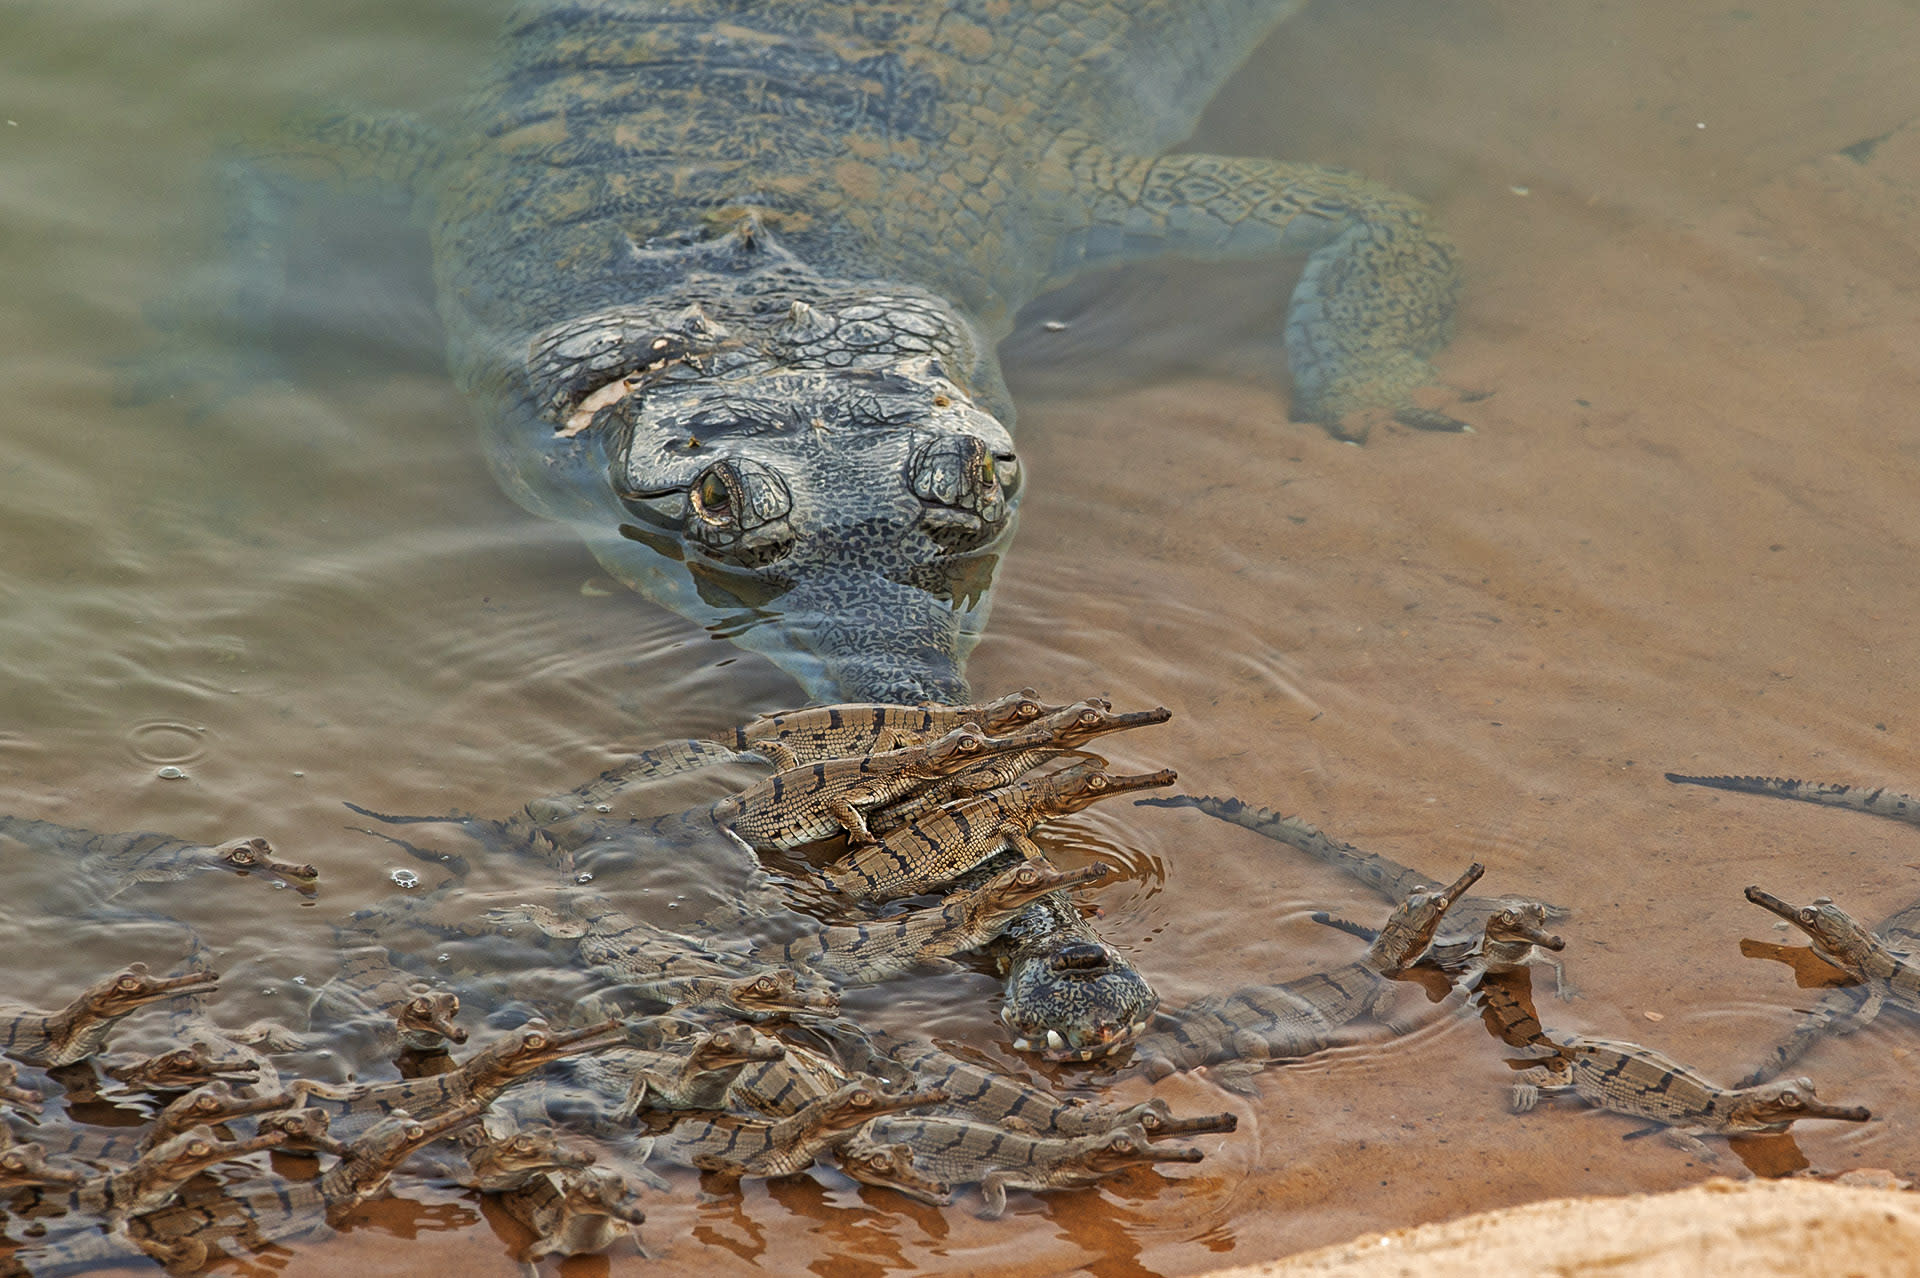 """Females watch over the nest, but once the young are born, males take over where protection is concerned. Around May-June, when the hatchlings have emerged, male gharials can be seen carrying hundreds of babies on their heads and snouts, so they can bask in the sun, and warm their bodies. Survival rate of gharial young is very low.  """"There is a significant change in their behaviour at this time,"""" says Mukherjee. """"During breeding season, they can be quite aggressive. Approach them, and they might attack, where otherwise they quietly slip into the water.""""  Photo: Dhritiman Mukherjee"""